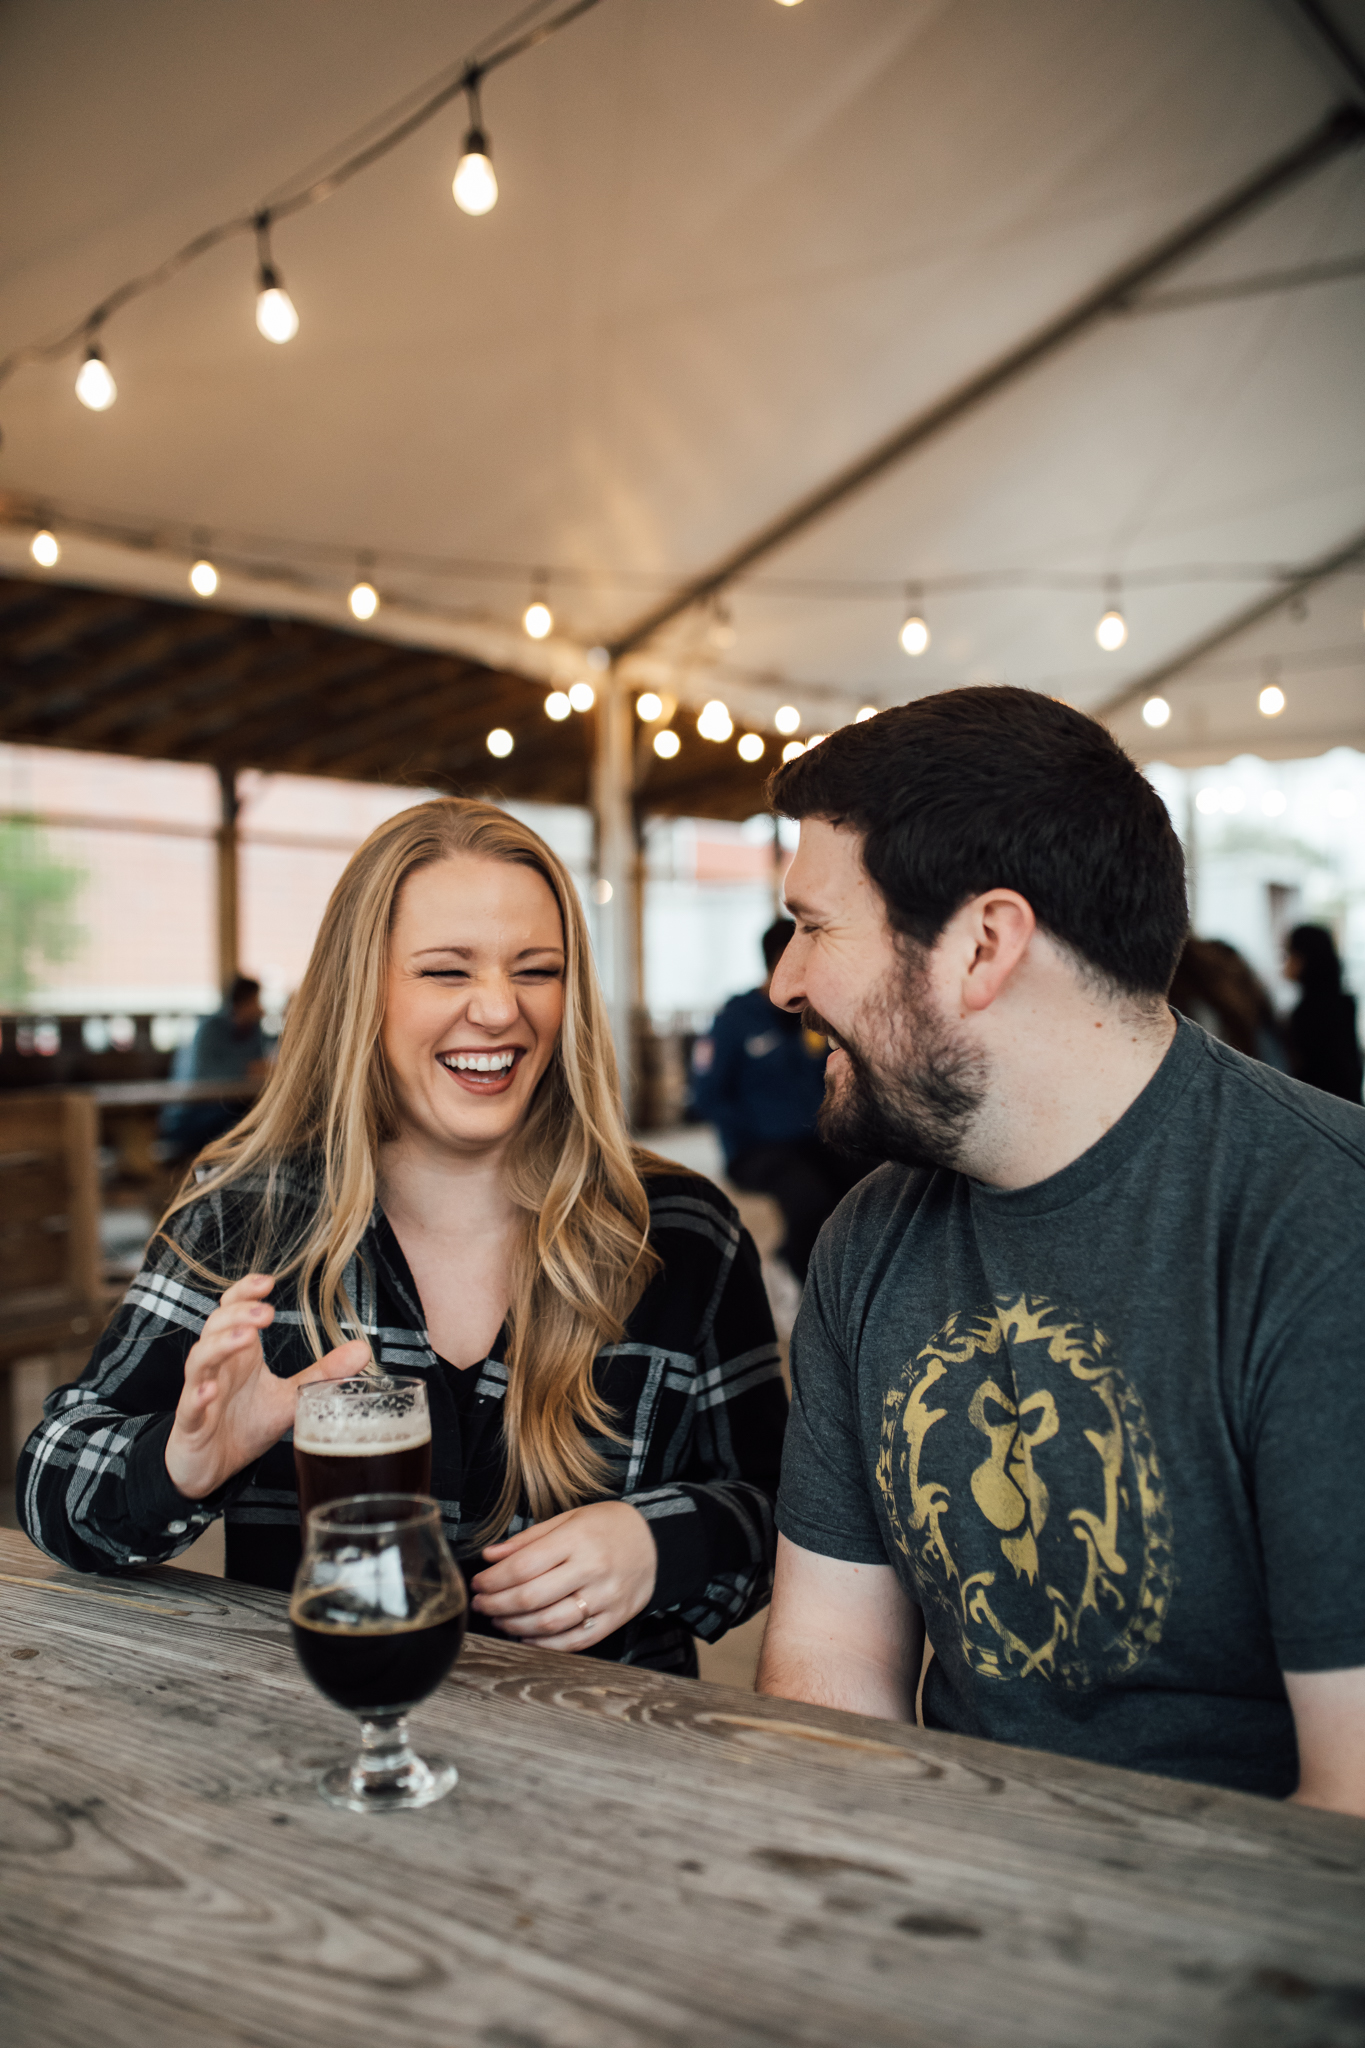 wiseacre-brewing-wedding-photographer-the-warmth-around-you-cassie-cook-photography (3 of 64).jpg